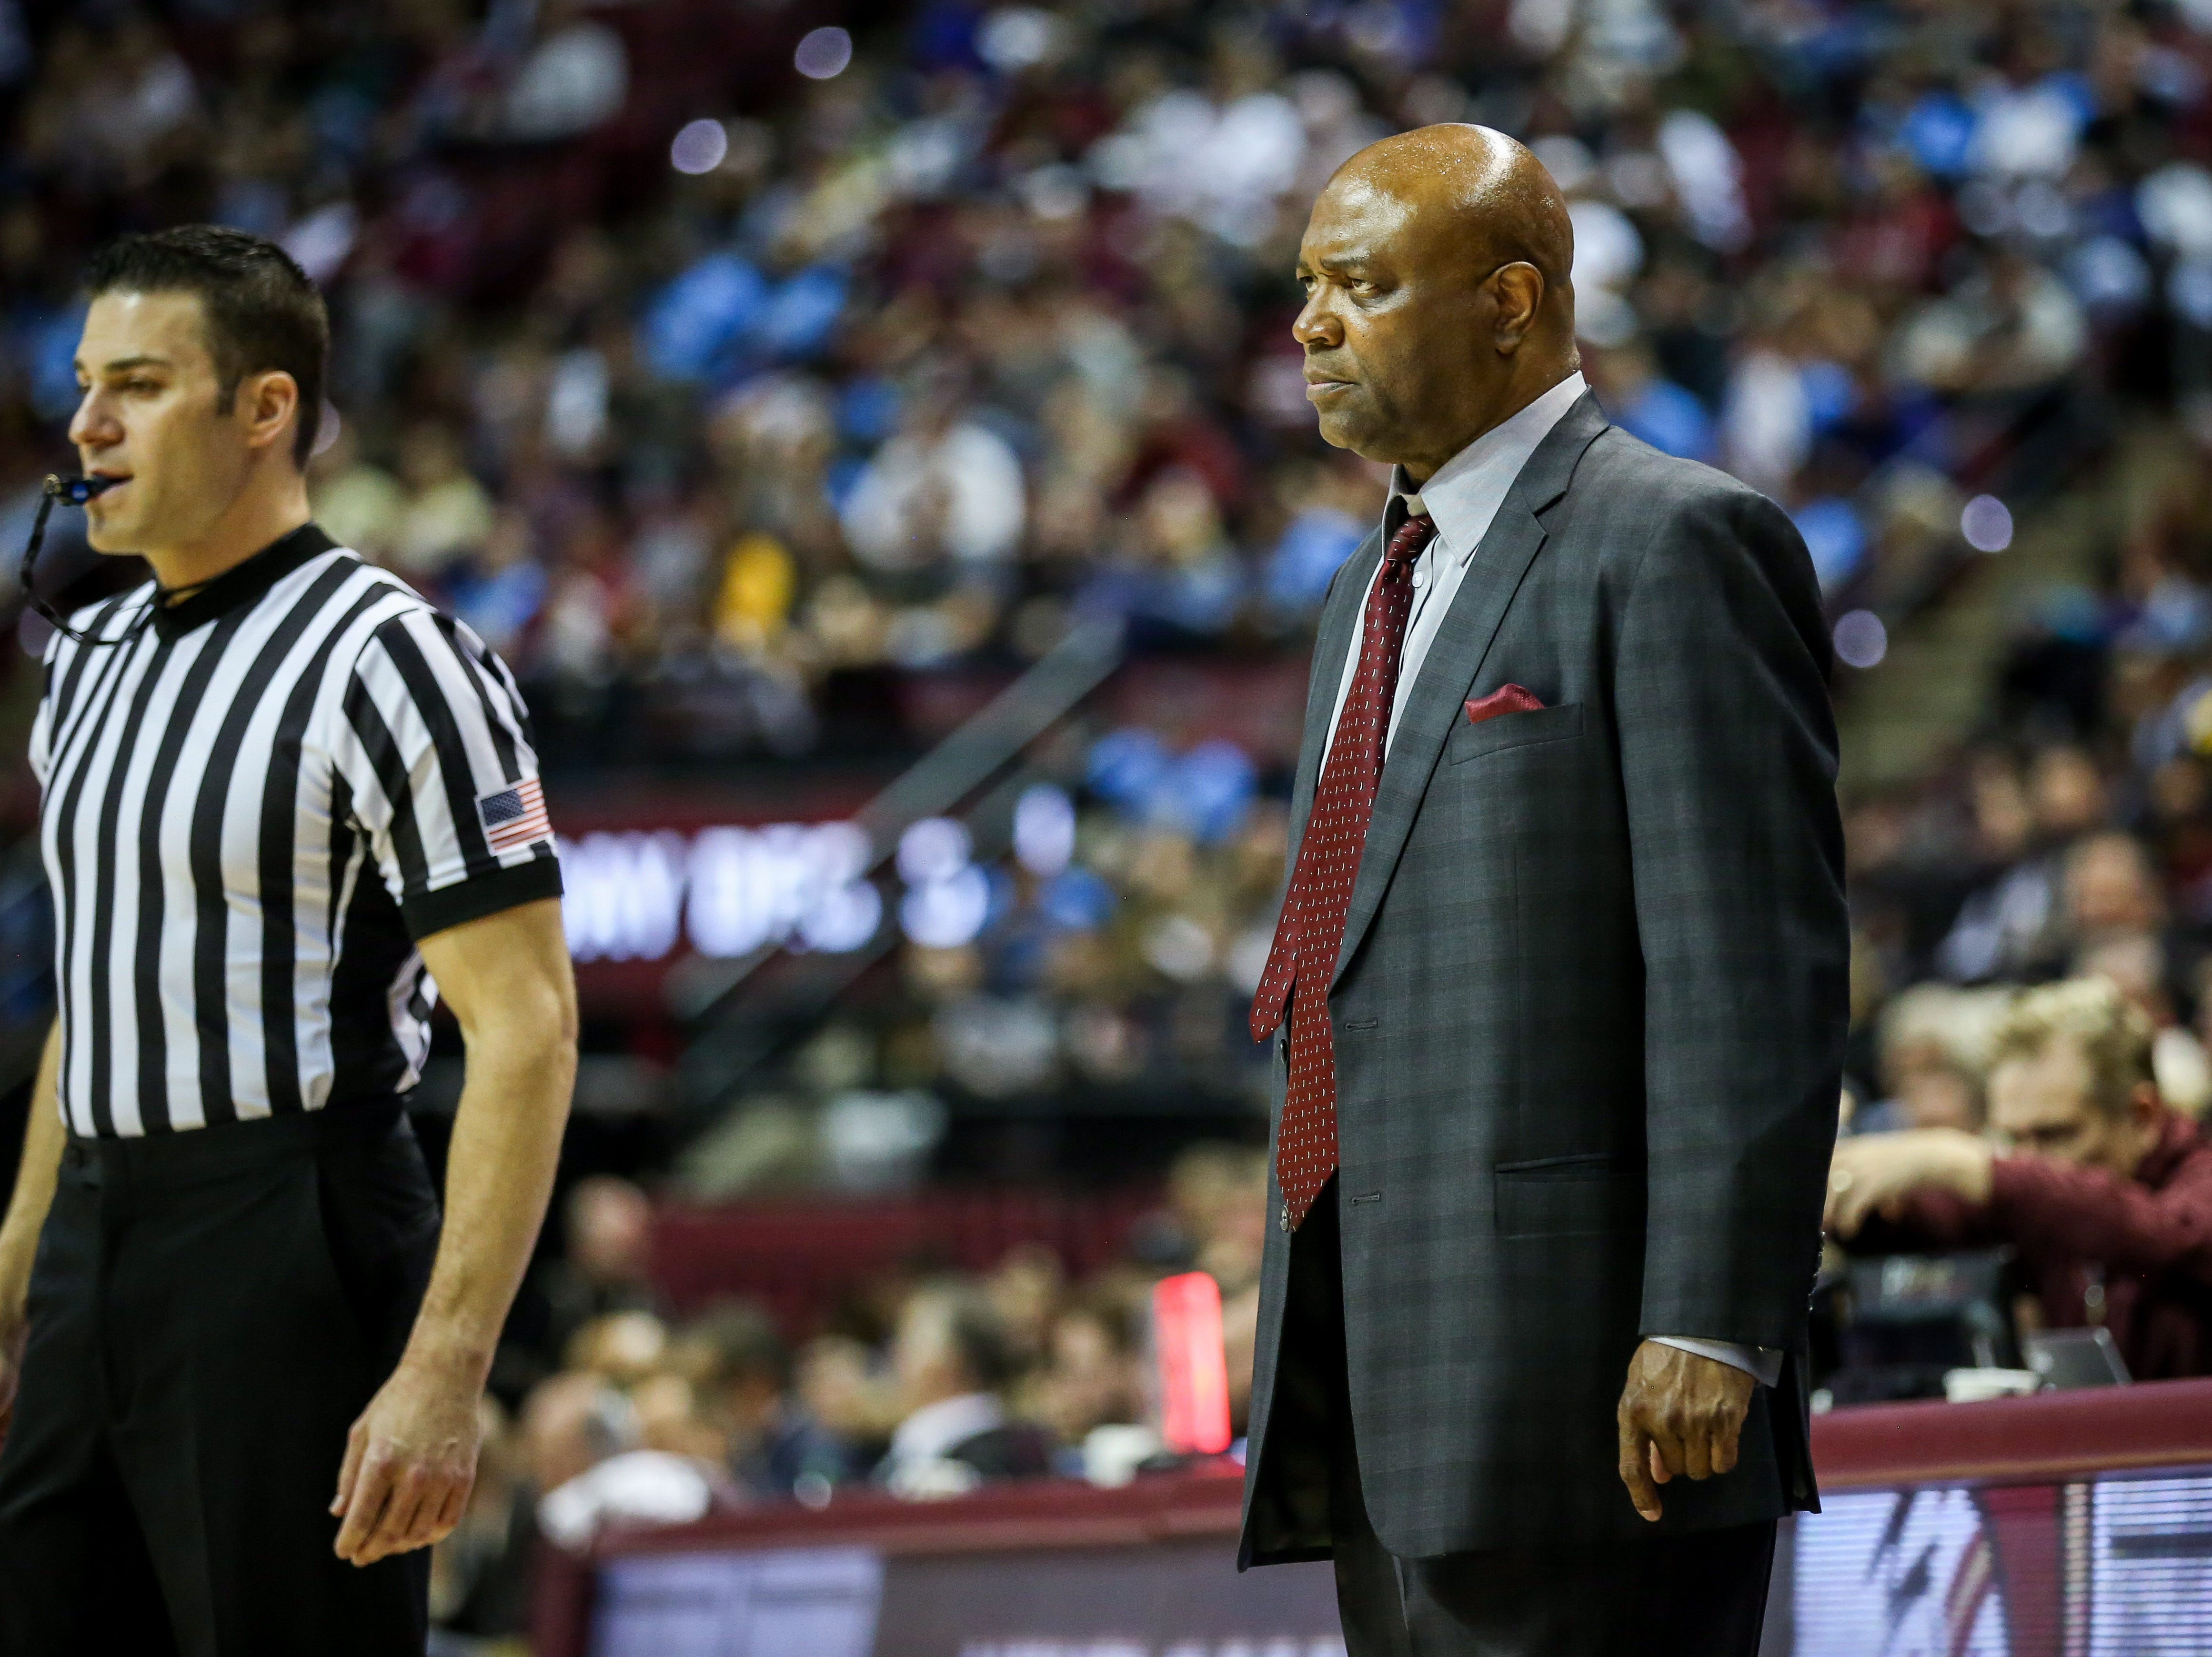 Prior to the game against Purdue on Wednesday, November 28th, FSU Head Coach, Leonard Hamilton, led his Seminoles to a 5-1 start this season.